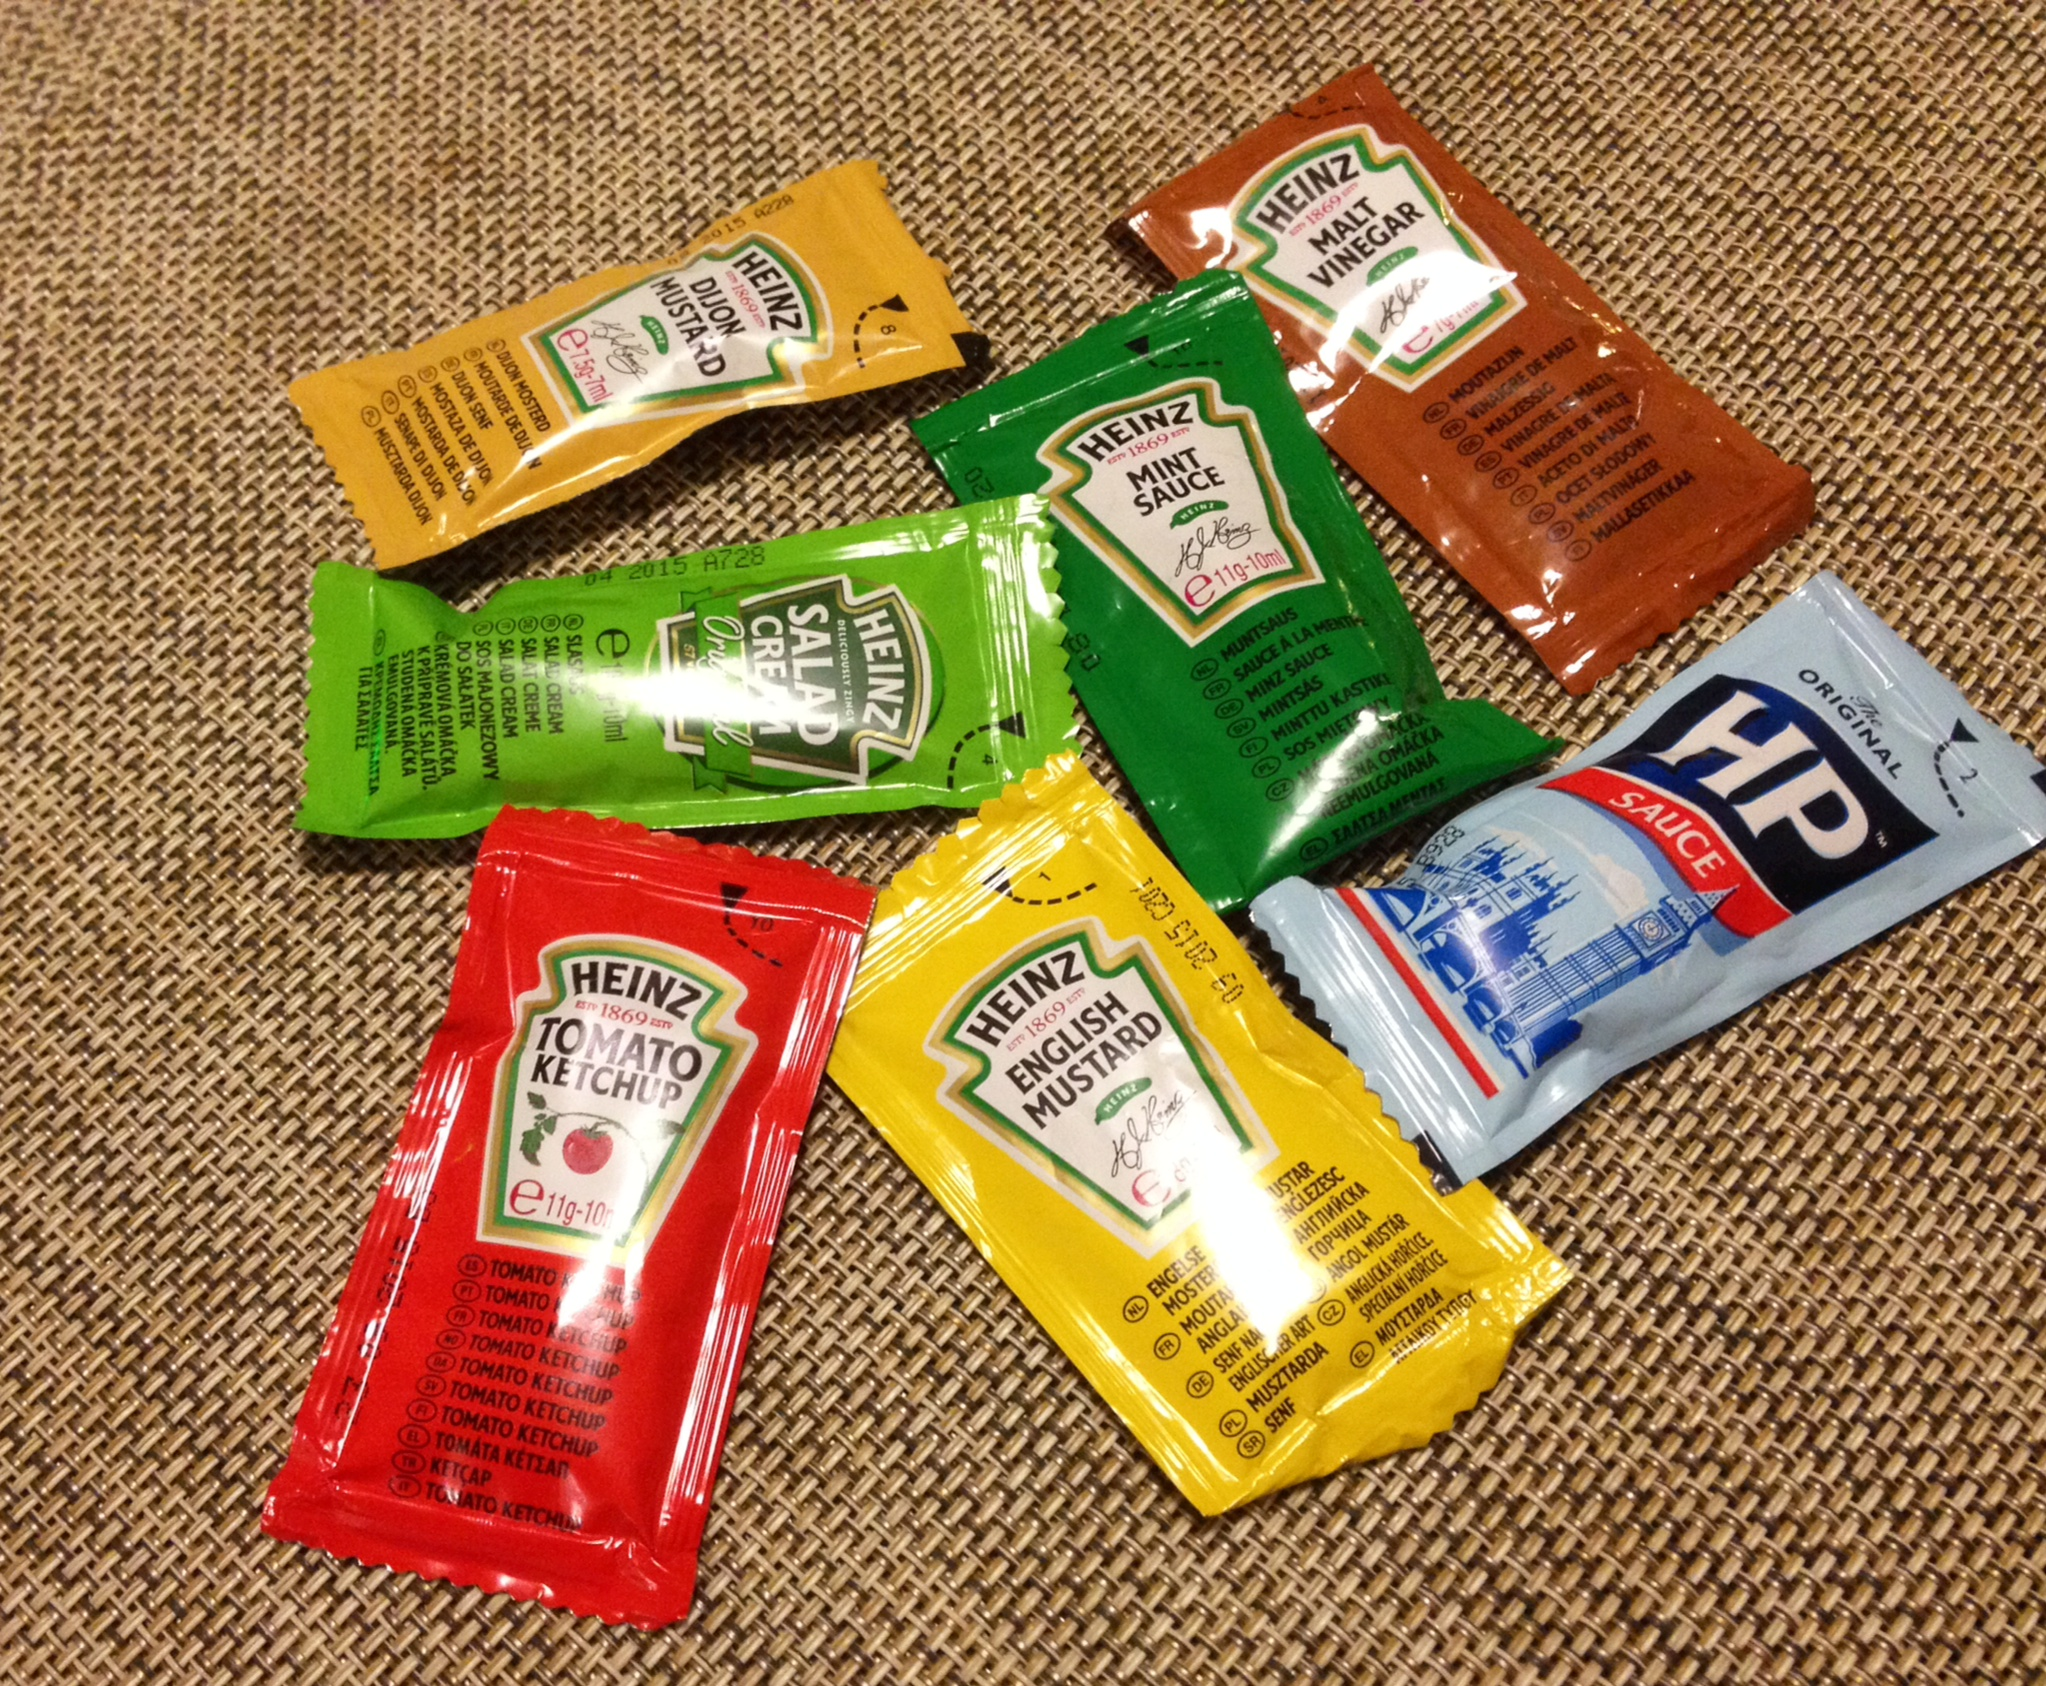 All the condiments in all the colors of the rainbow!